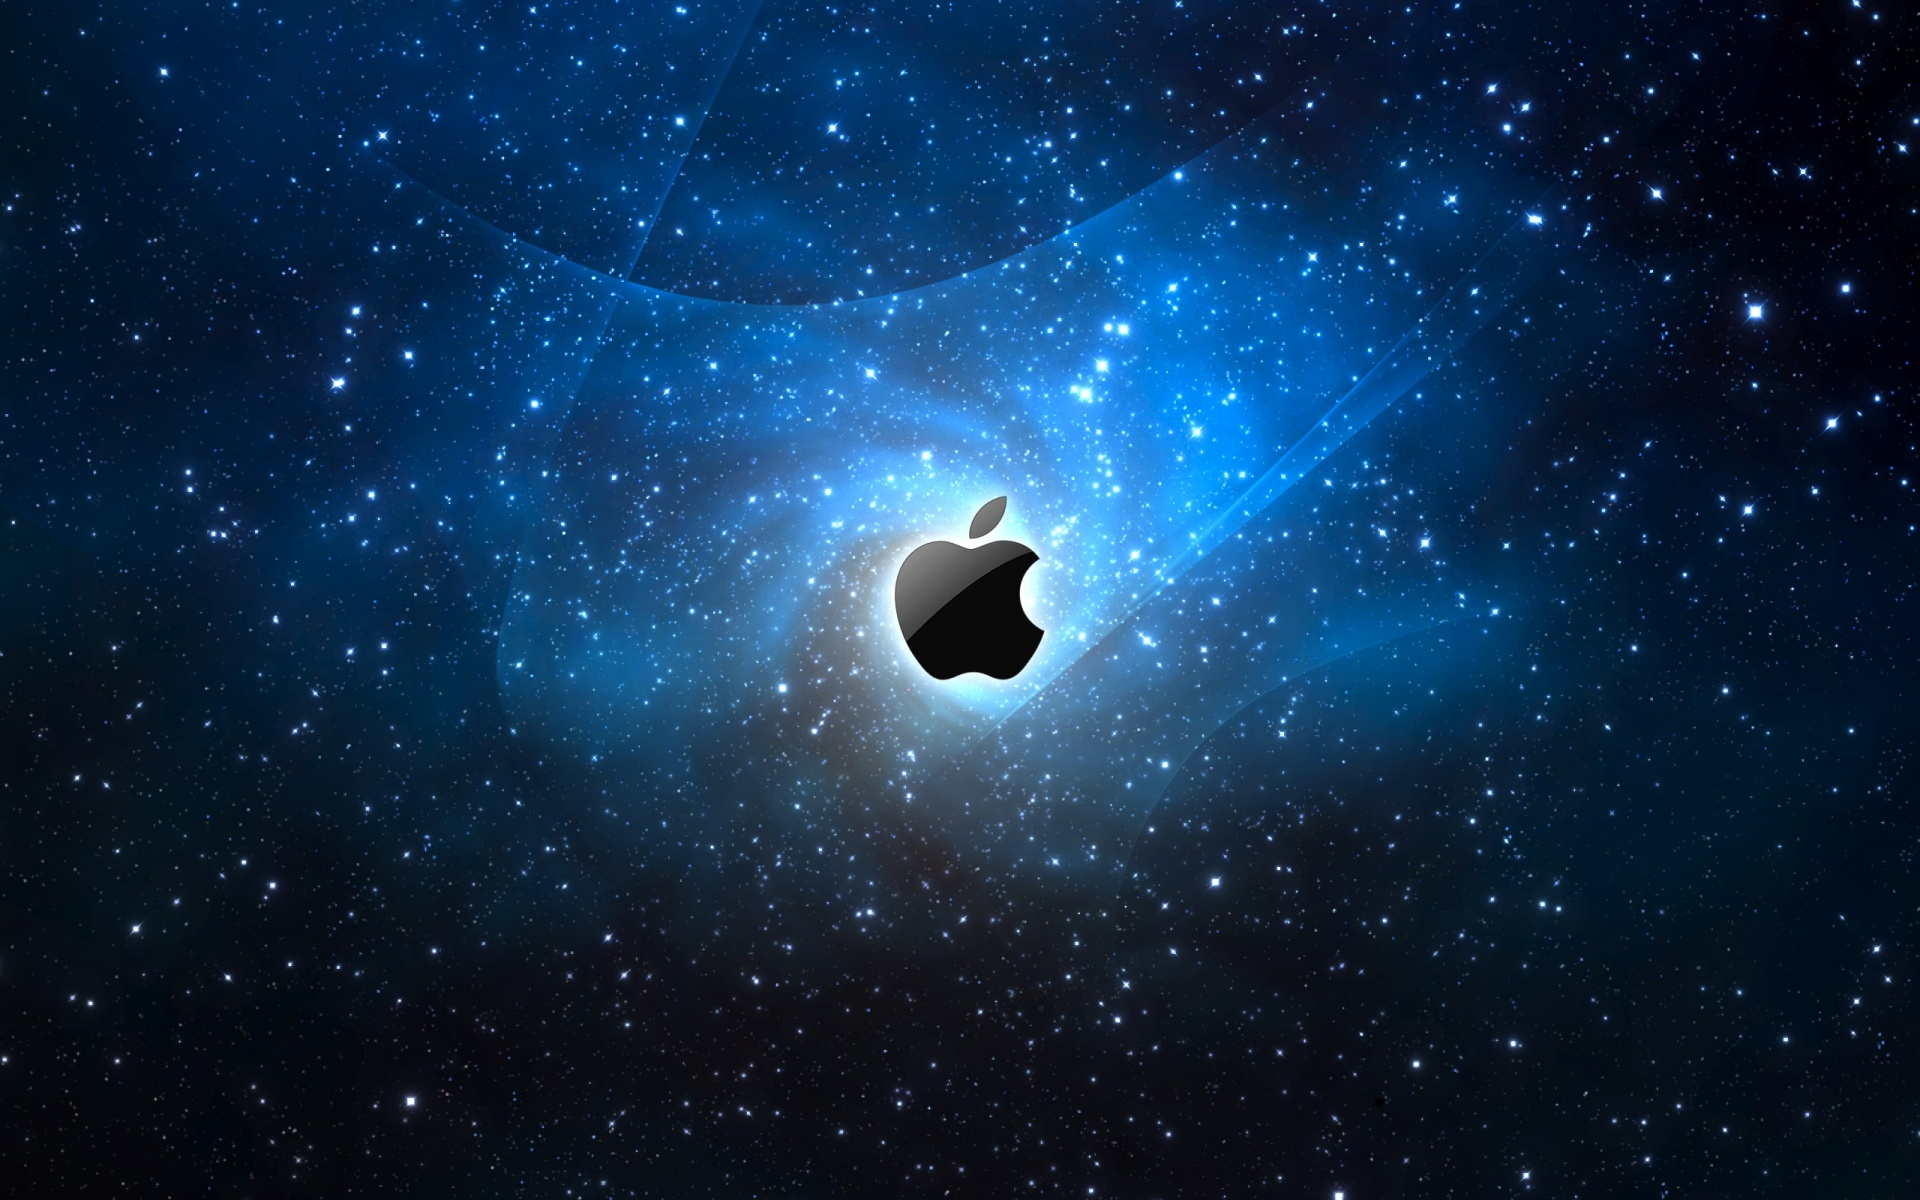 Apple Logo Wallpapers-0 Apple Logo Wallpapers-1 ...